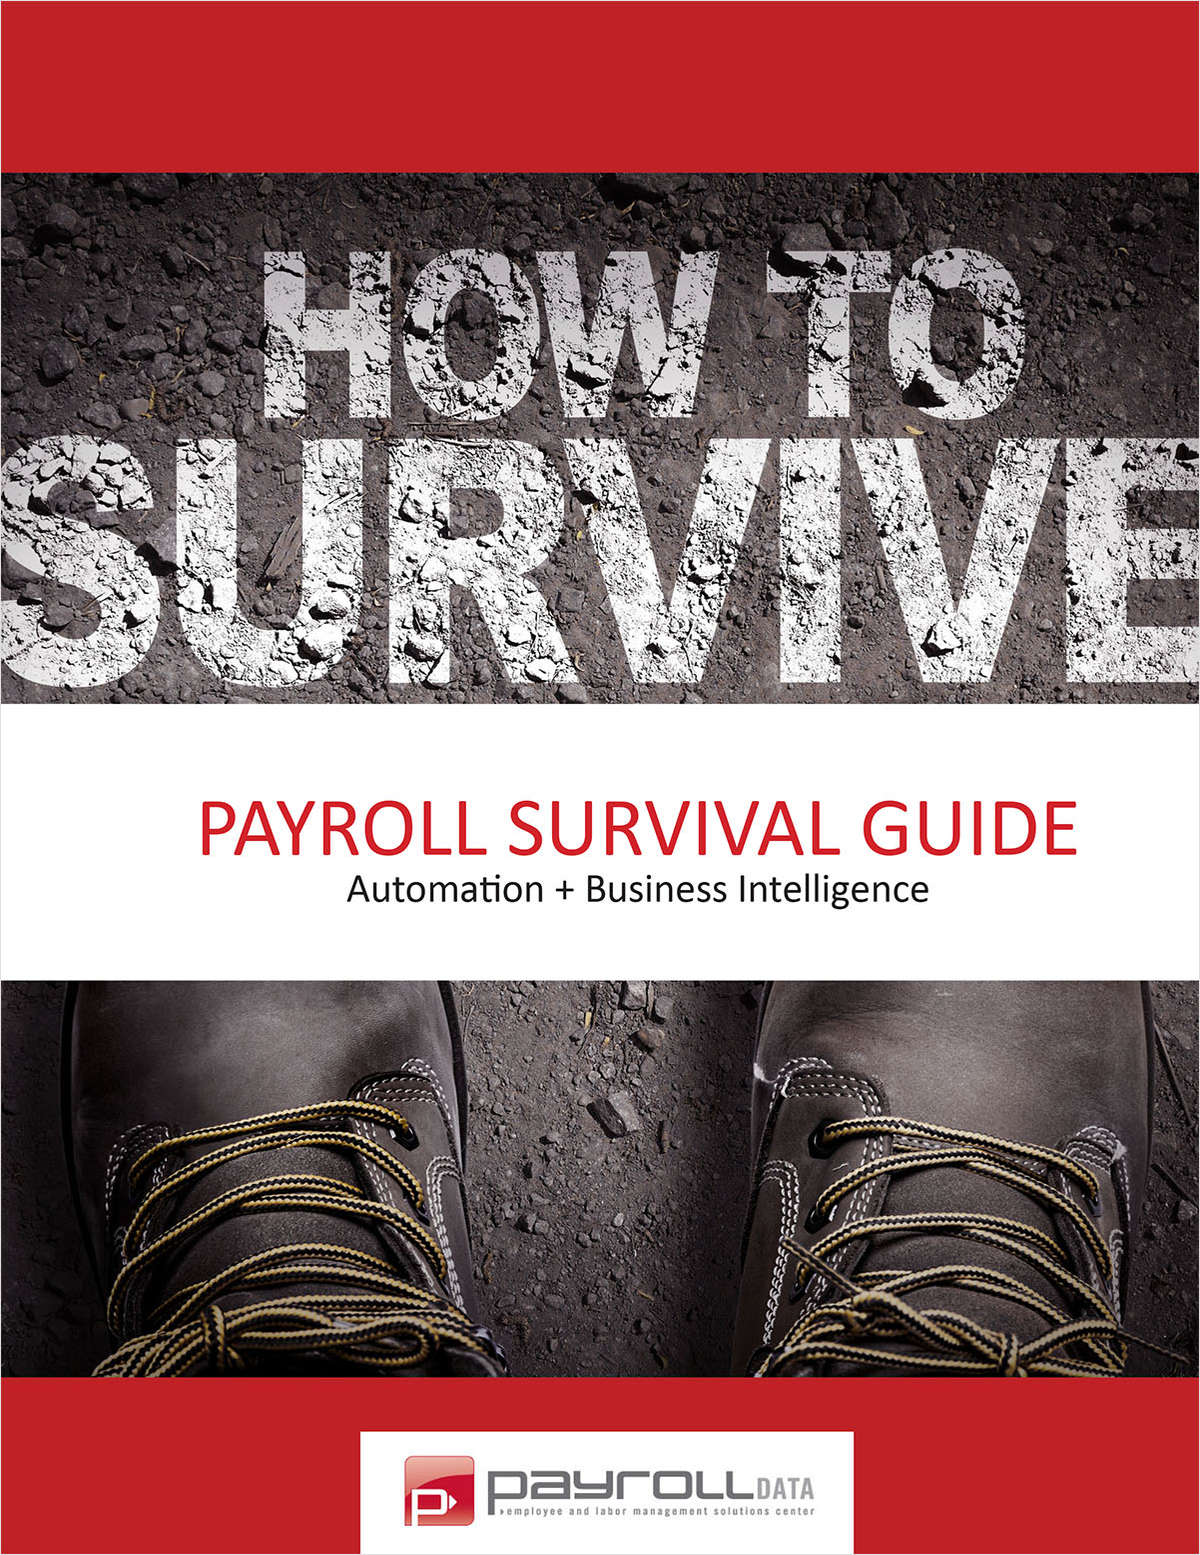 Payroll Survival Guide - Automation + Business Intelligence